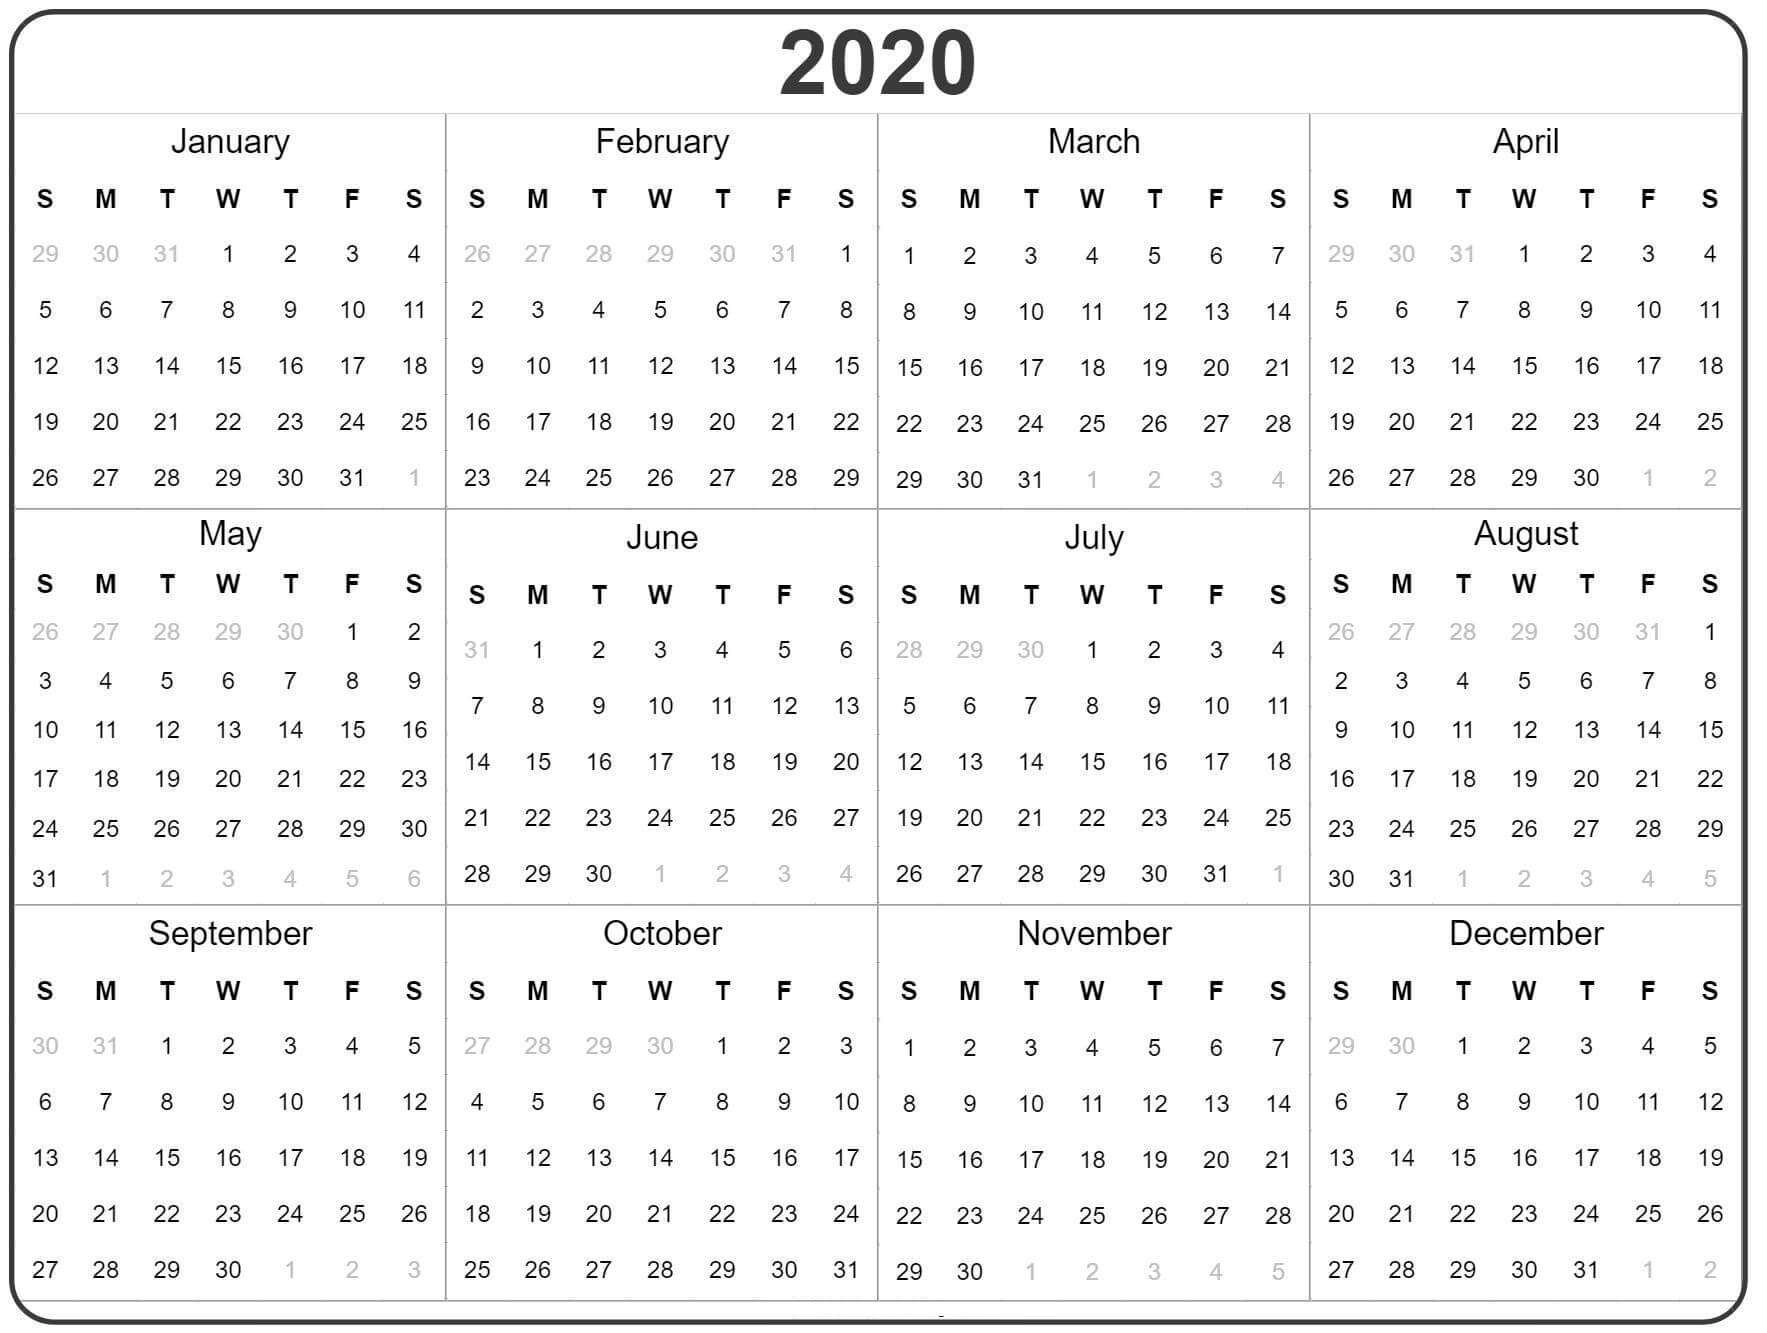 Free Yearly Calendar 2020 With Notes - 2019 Calendars For inside Calendar At A Glance 2020